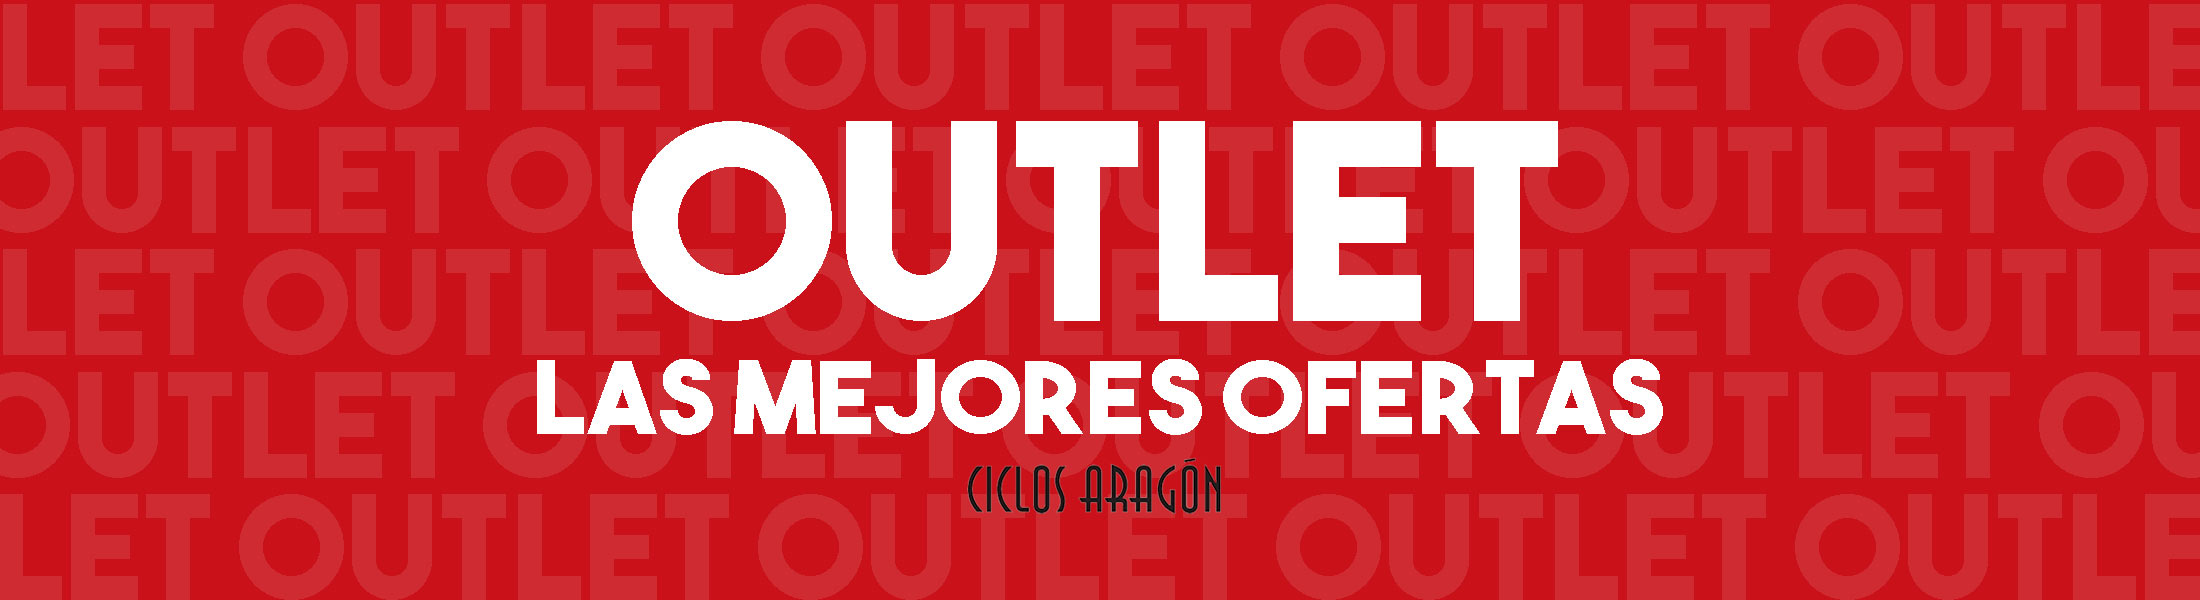 Cartel Outlet